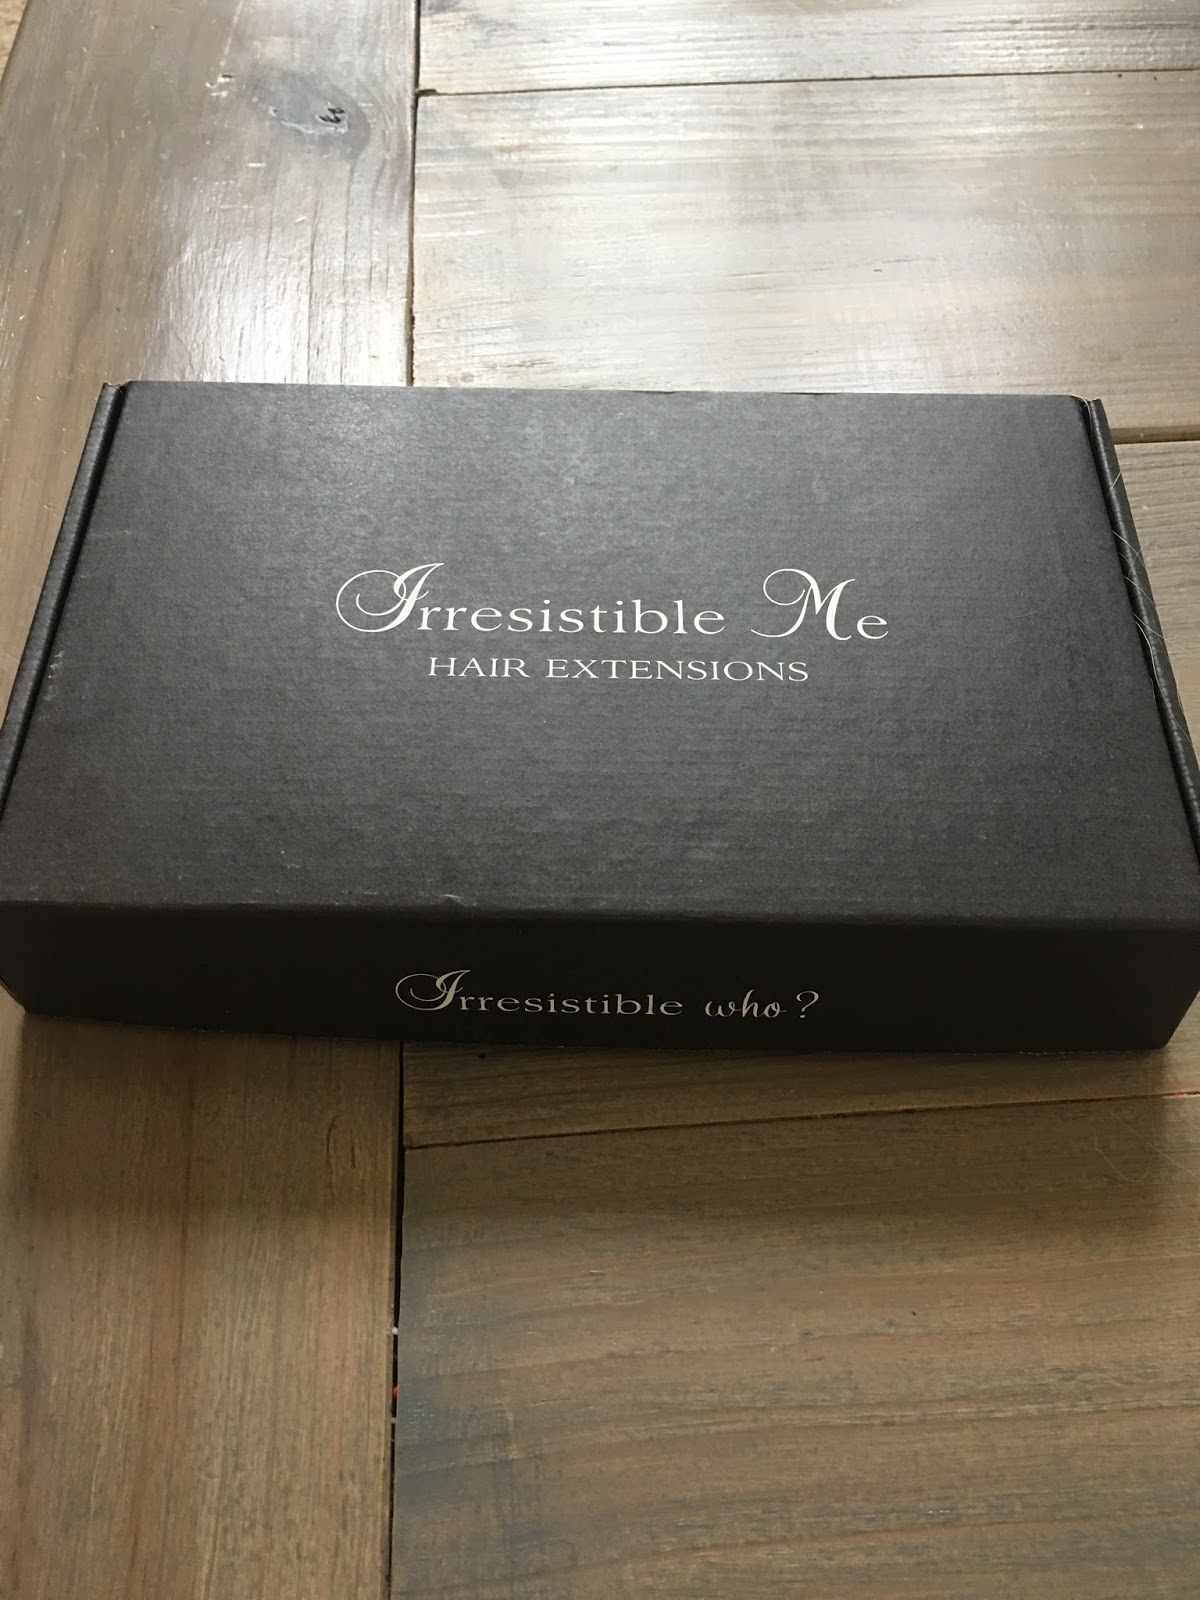 Sincerely Stevie Irresistible Me Hair Extension Review